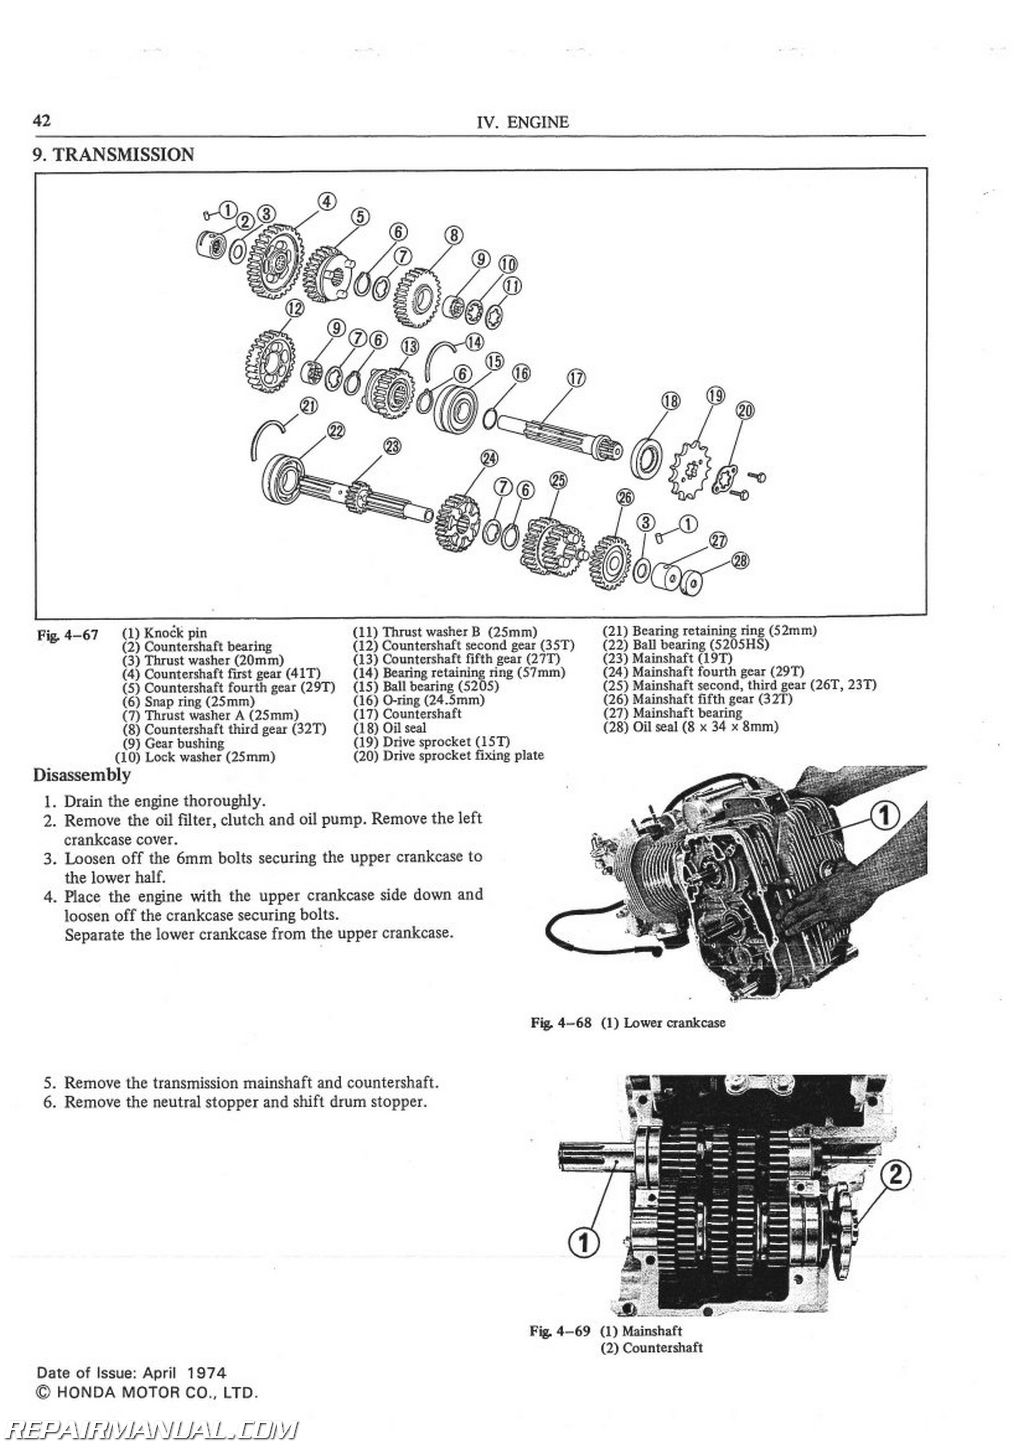 Vt700c Wiring Diagram Another Blog About 1974 Ford Ltd Honda Cb350 Four Auto 1985 Shadow